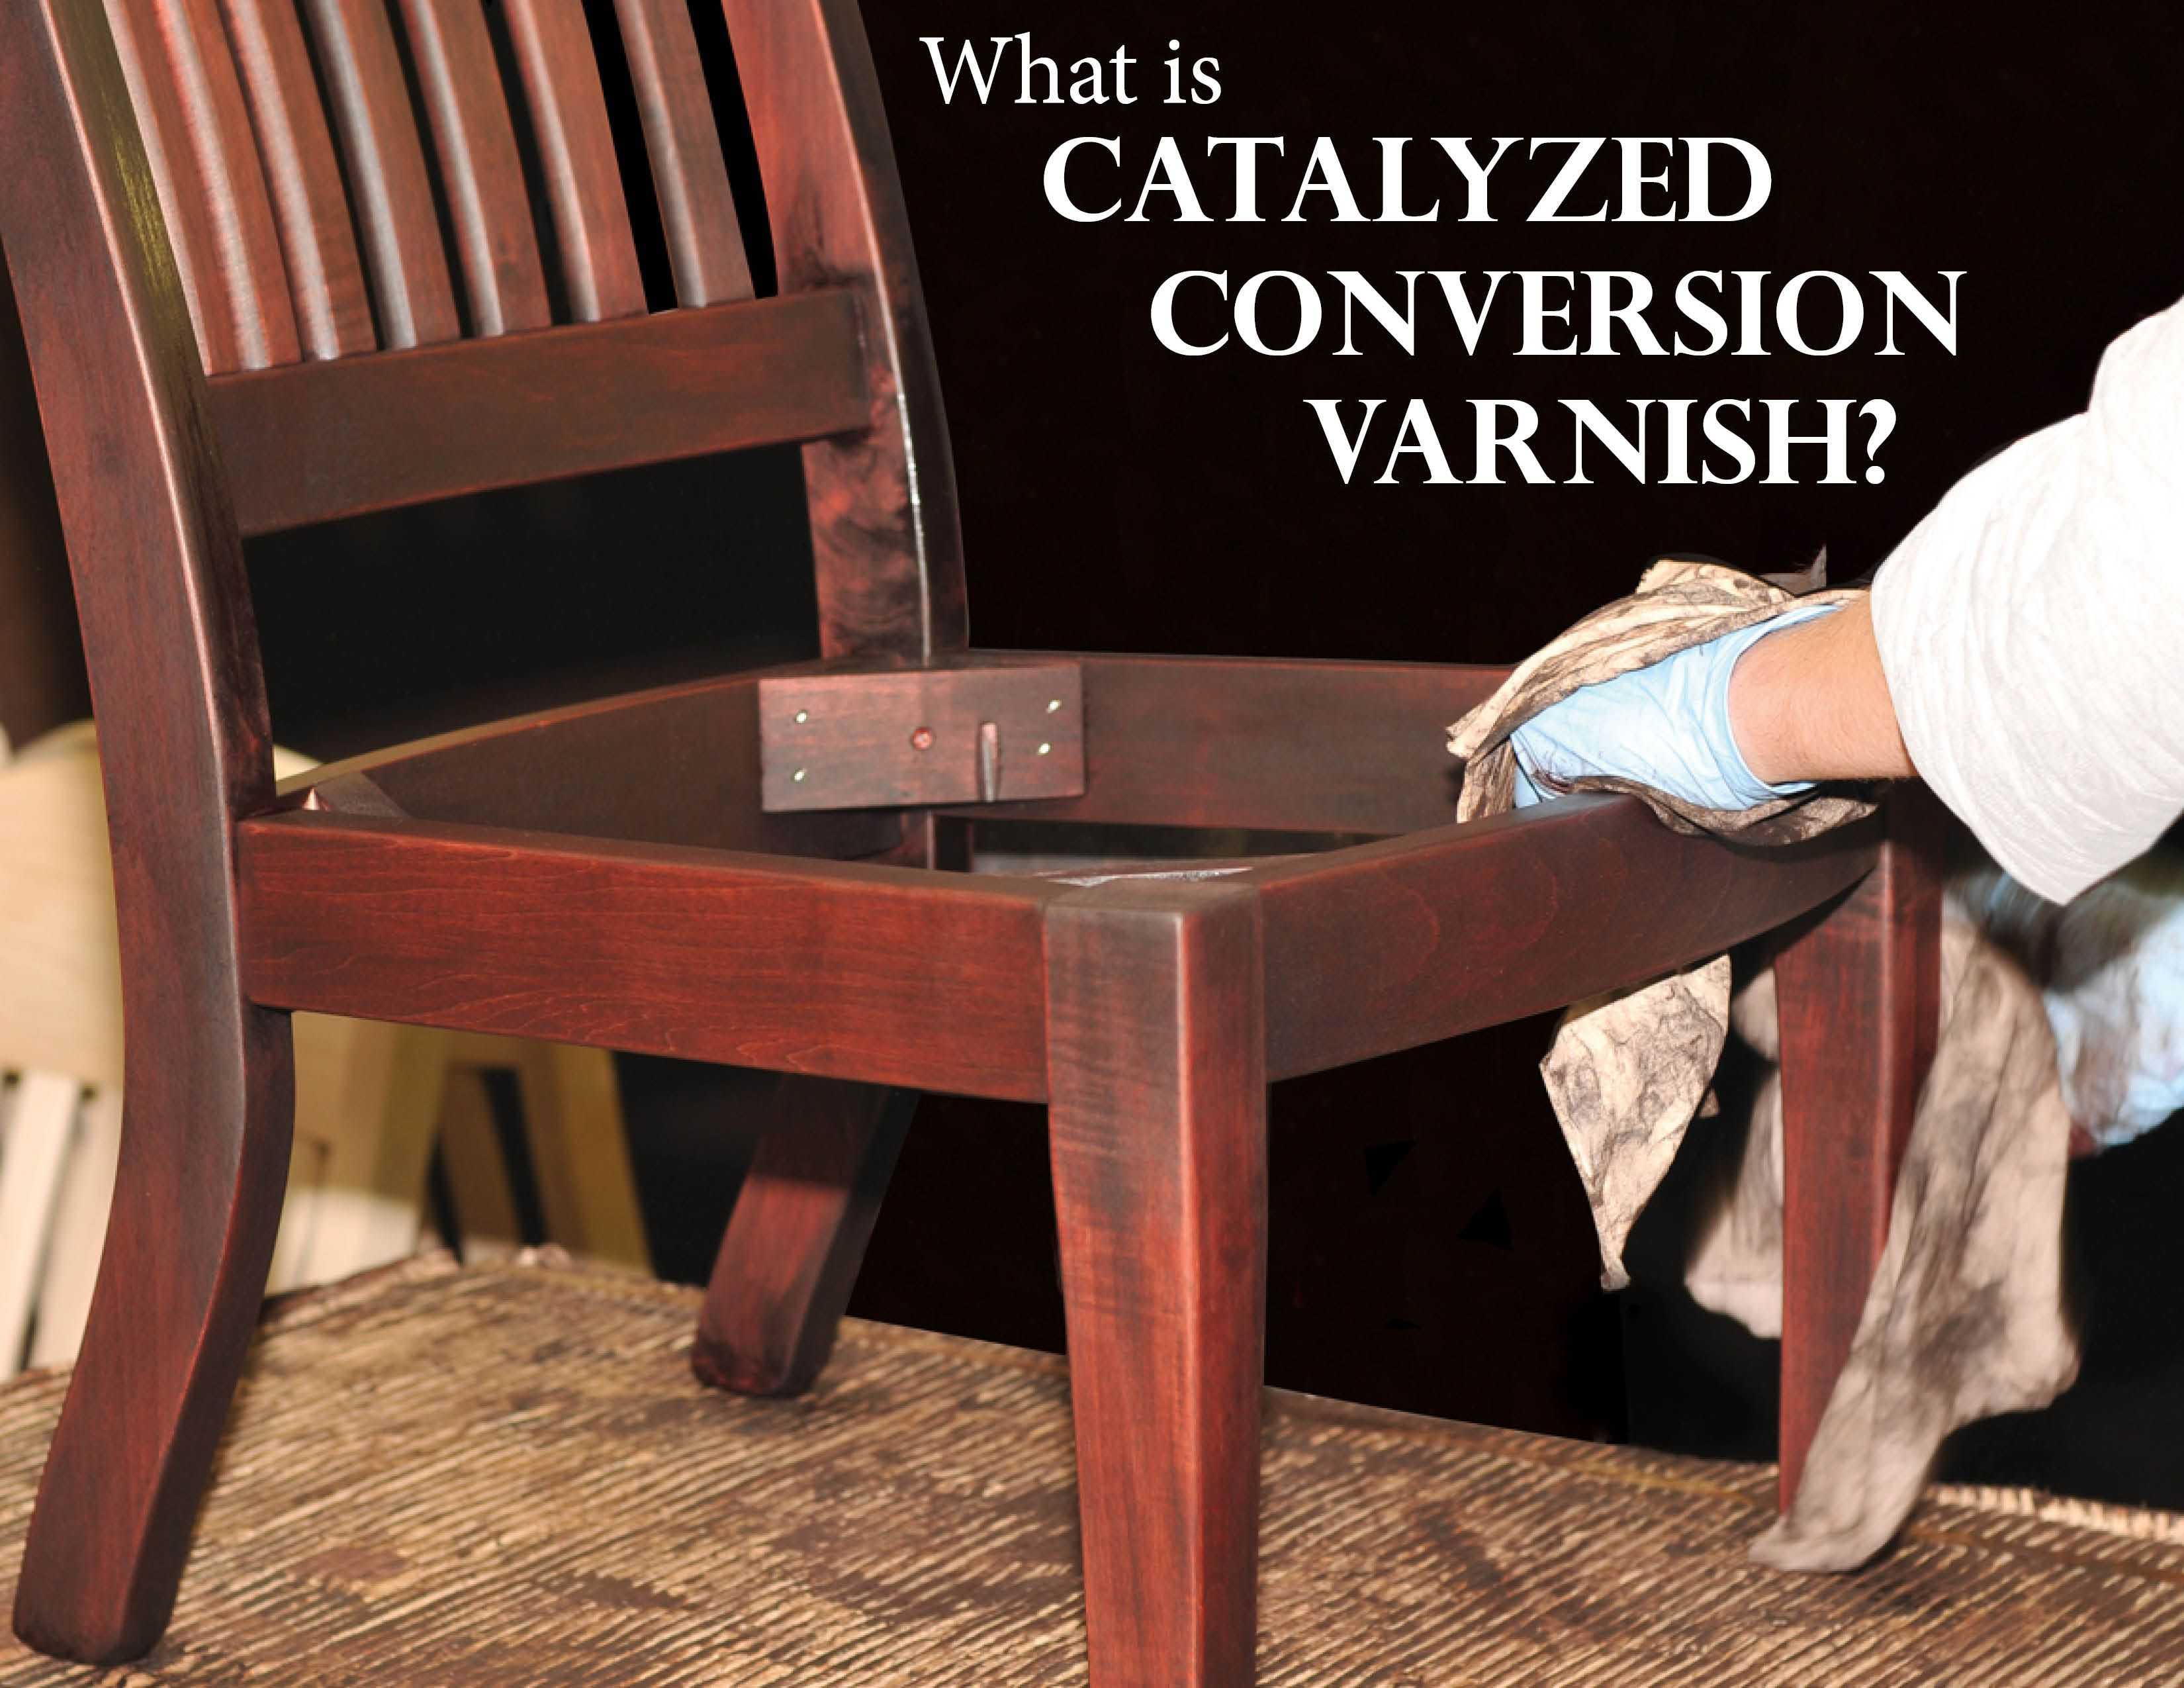 Catalyzed Conversion Varnish Learn The Basics About The Golden Standard Of Fine Furniture Finishes Amish Furniture Staining Wood Furniture Finishes